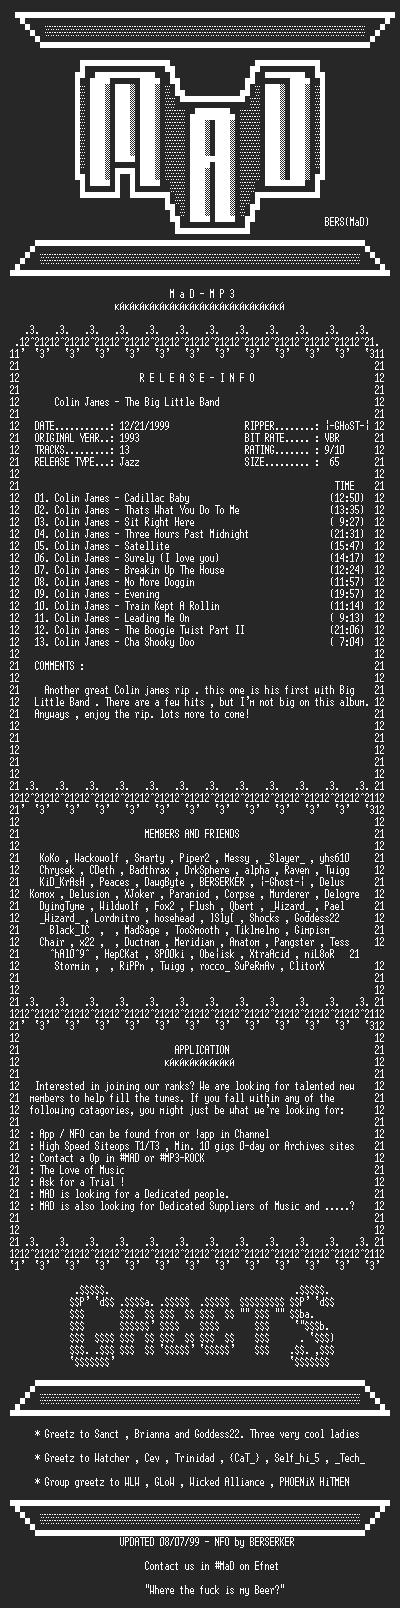 NFO file for Colin_James_-_The_Big_Little_Band_(1993)-MAD